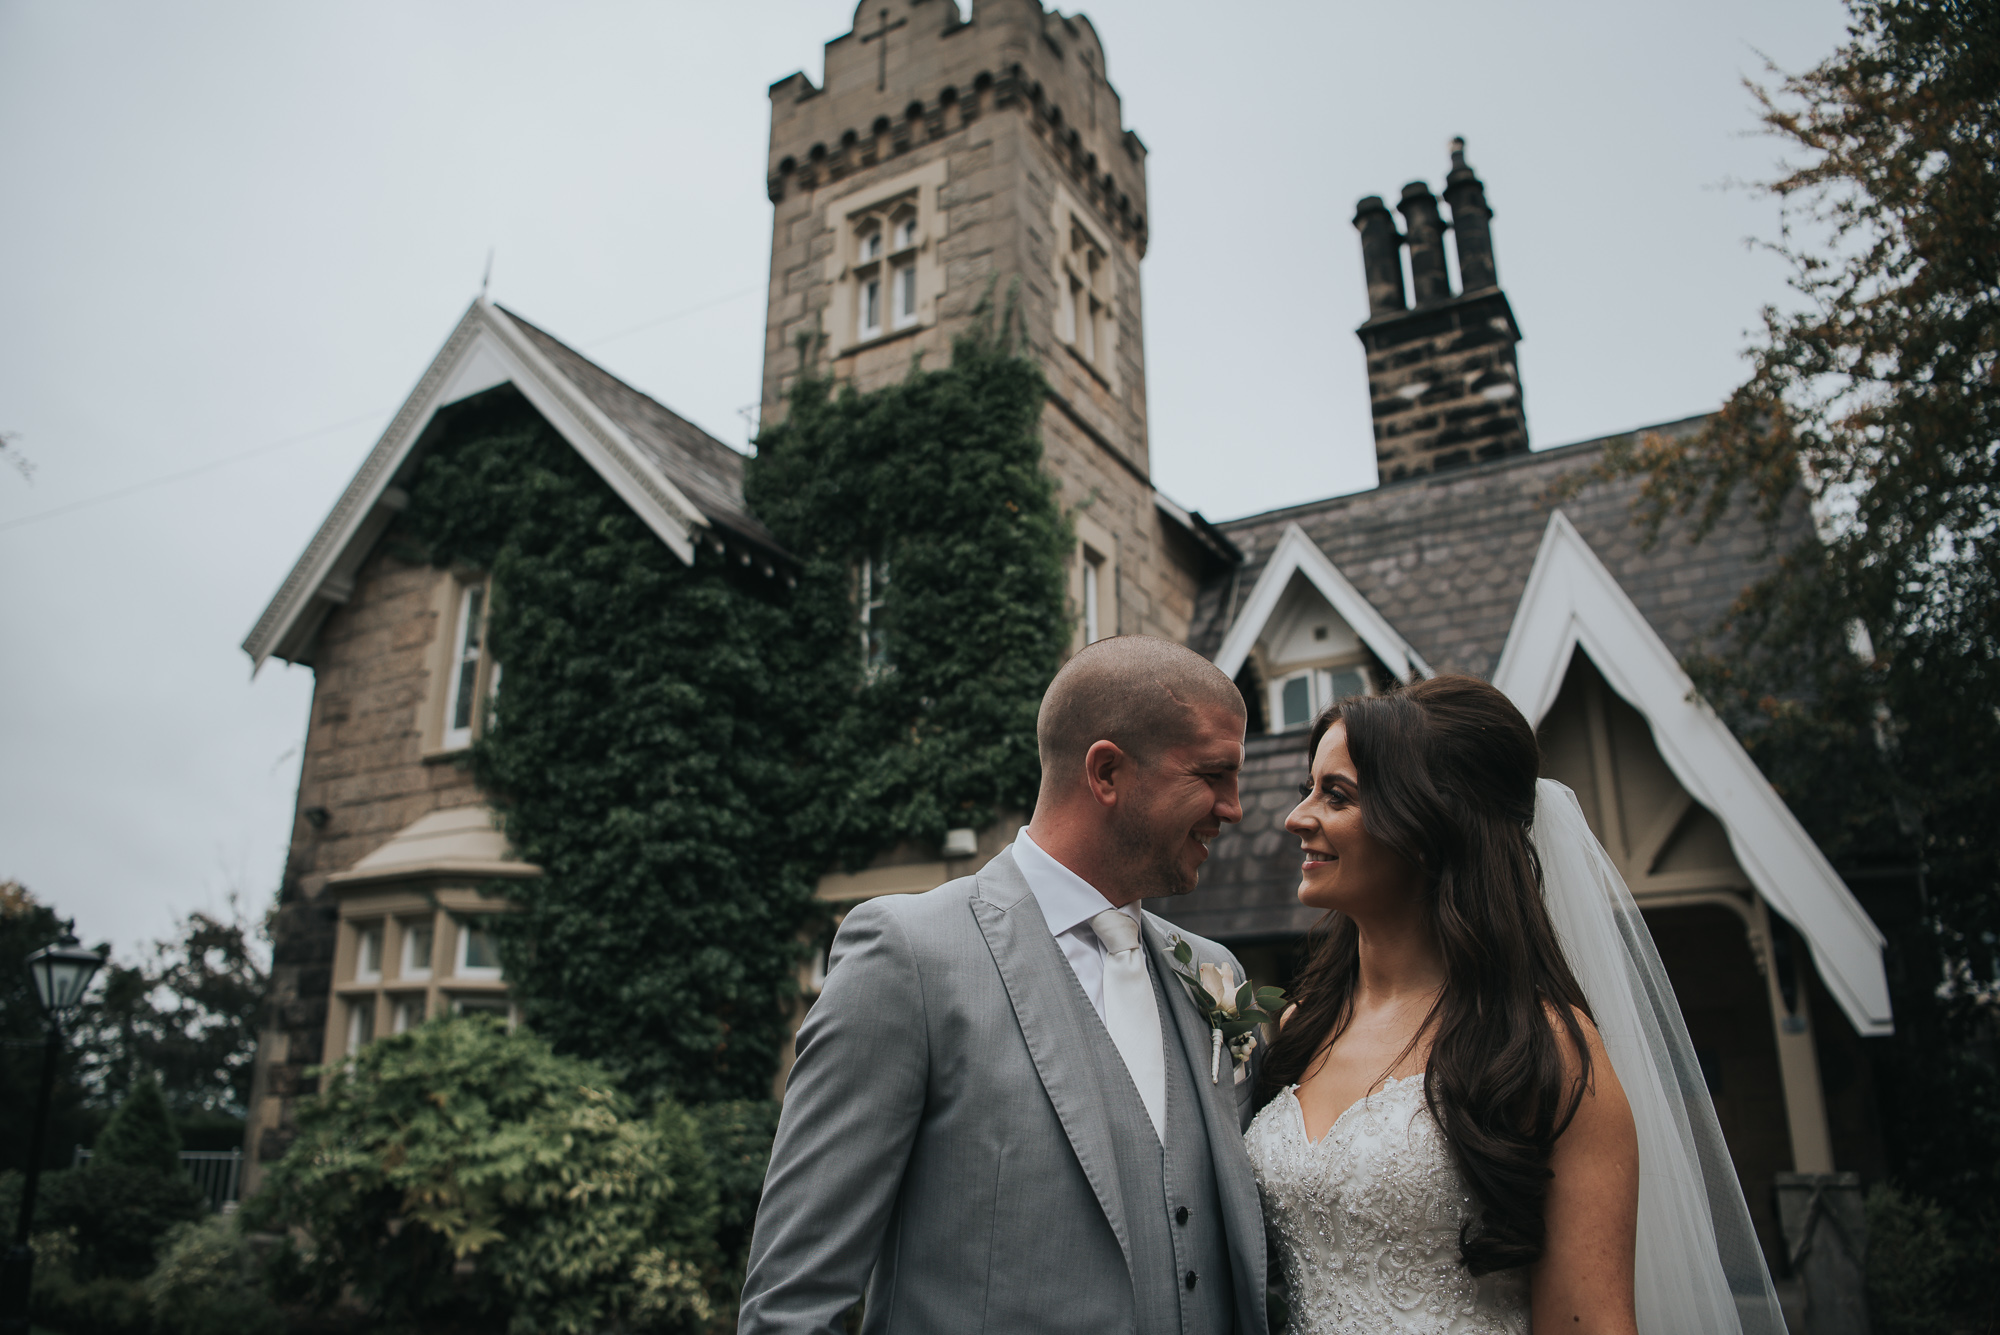 West Tower Wedding photography in cheshire north west england (21 of 33).jpg